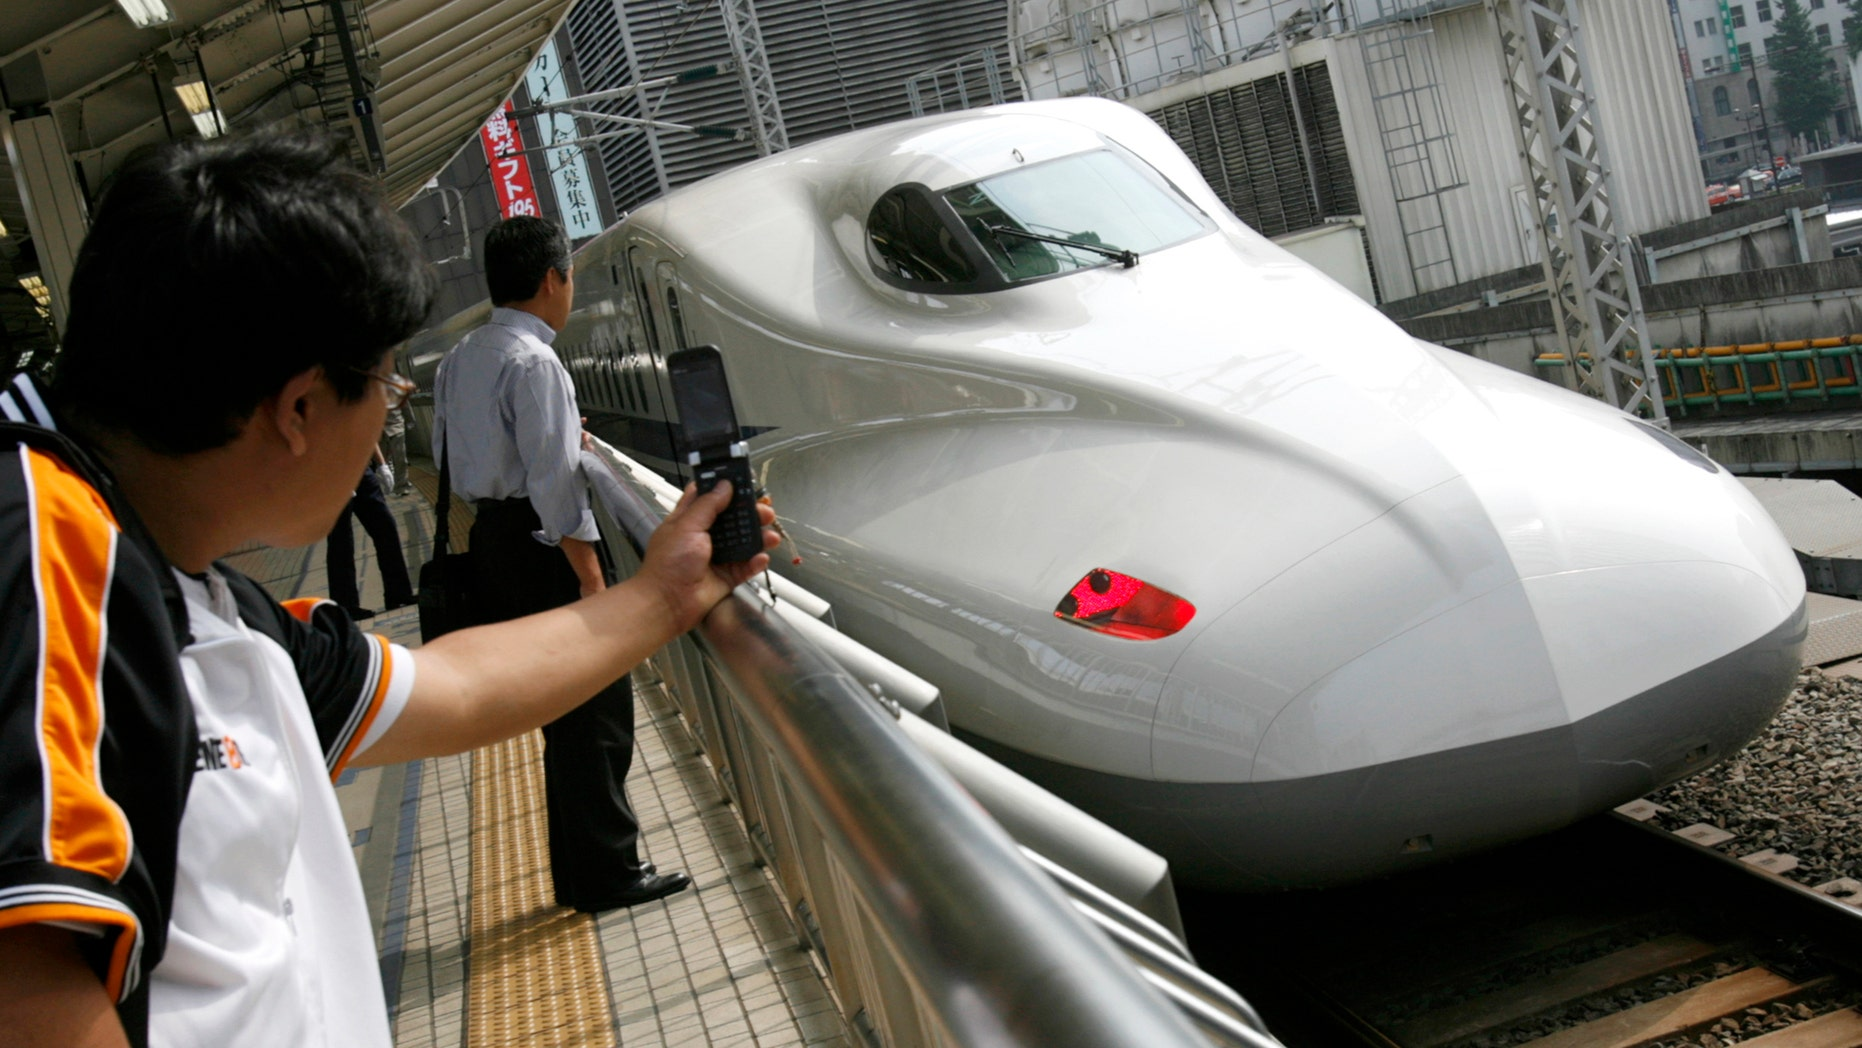 File photo - Men look at Japan Railway's N700 bullet train standing at a platform of Tokyo Station in Tokyo July 6, 2007.